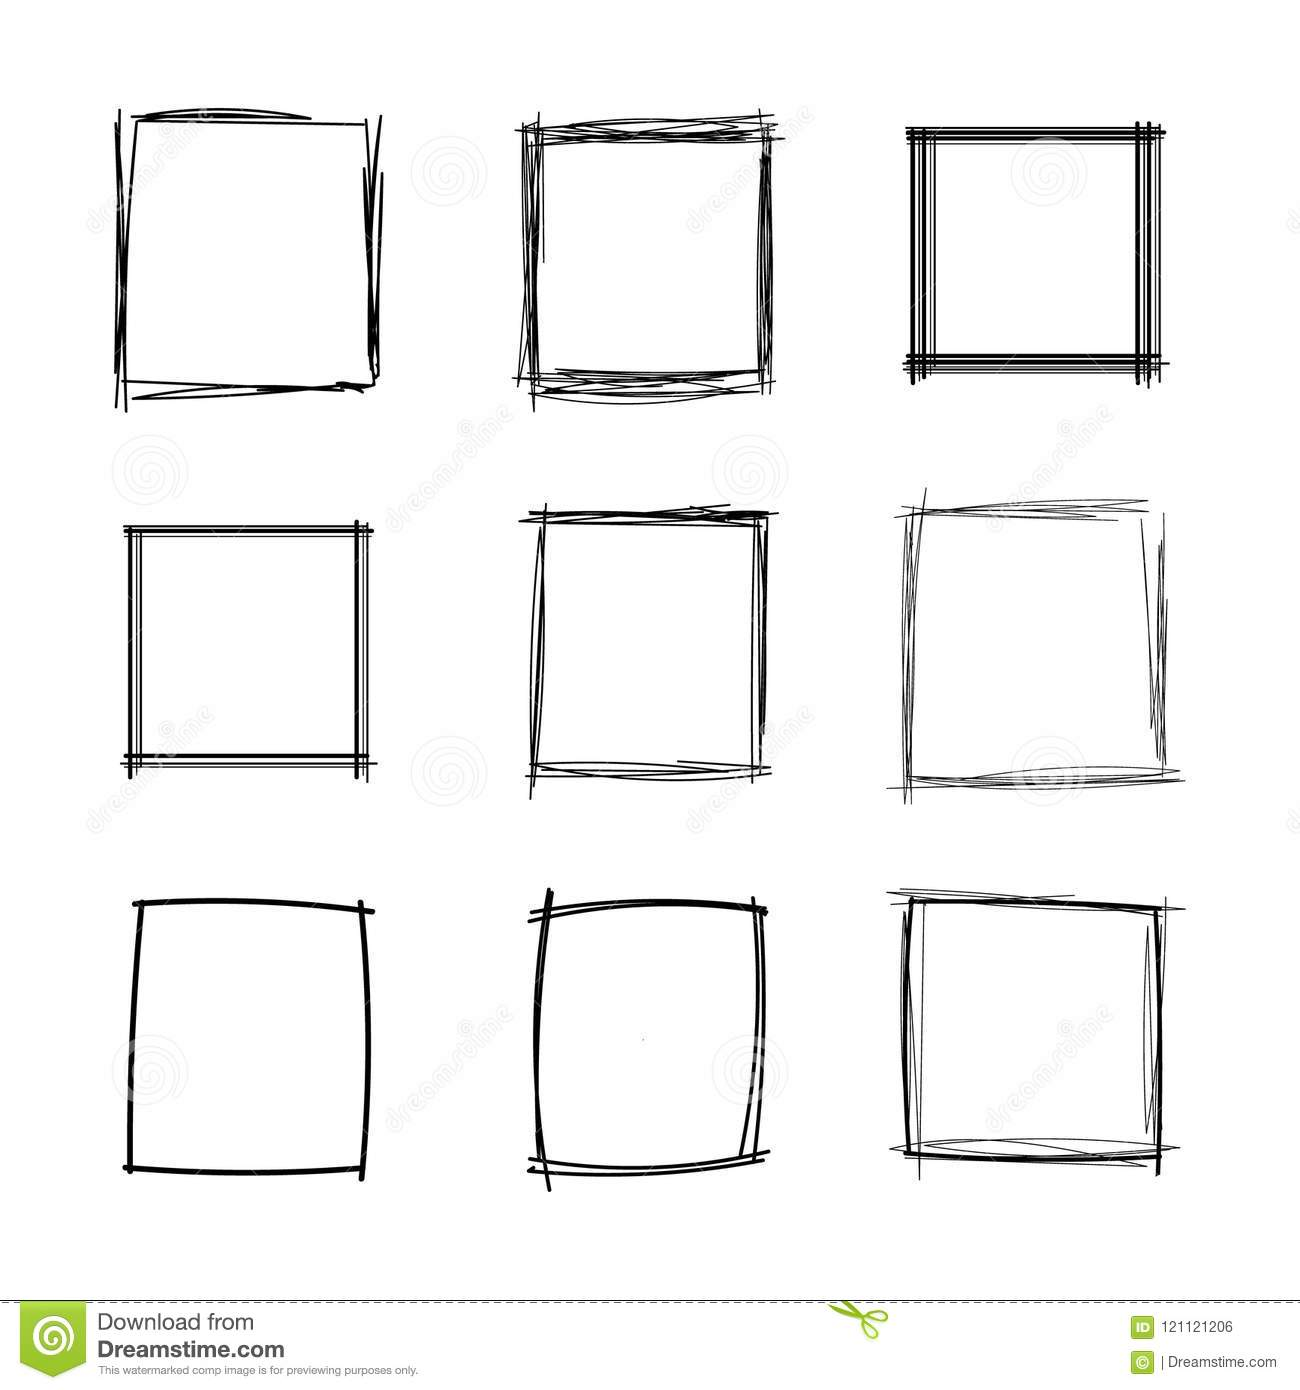 Vector Doodle Squares Set, Blank Frames Collection, Black Scribble Geometric Shapes Isolated.